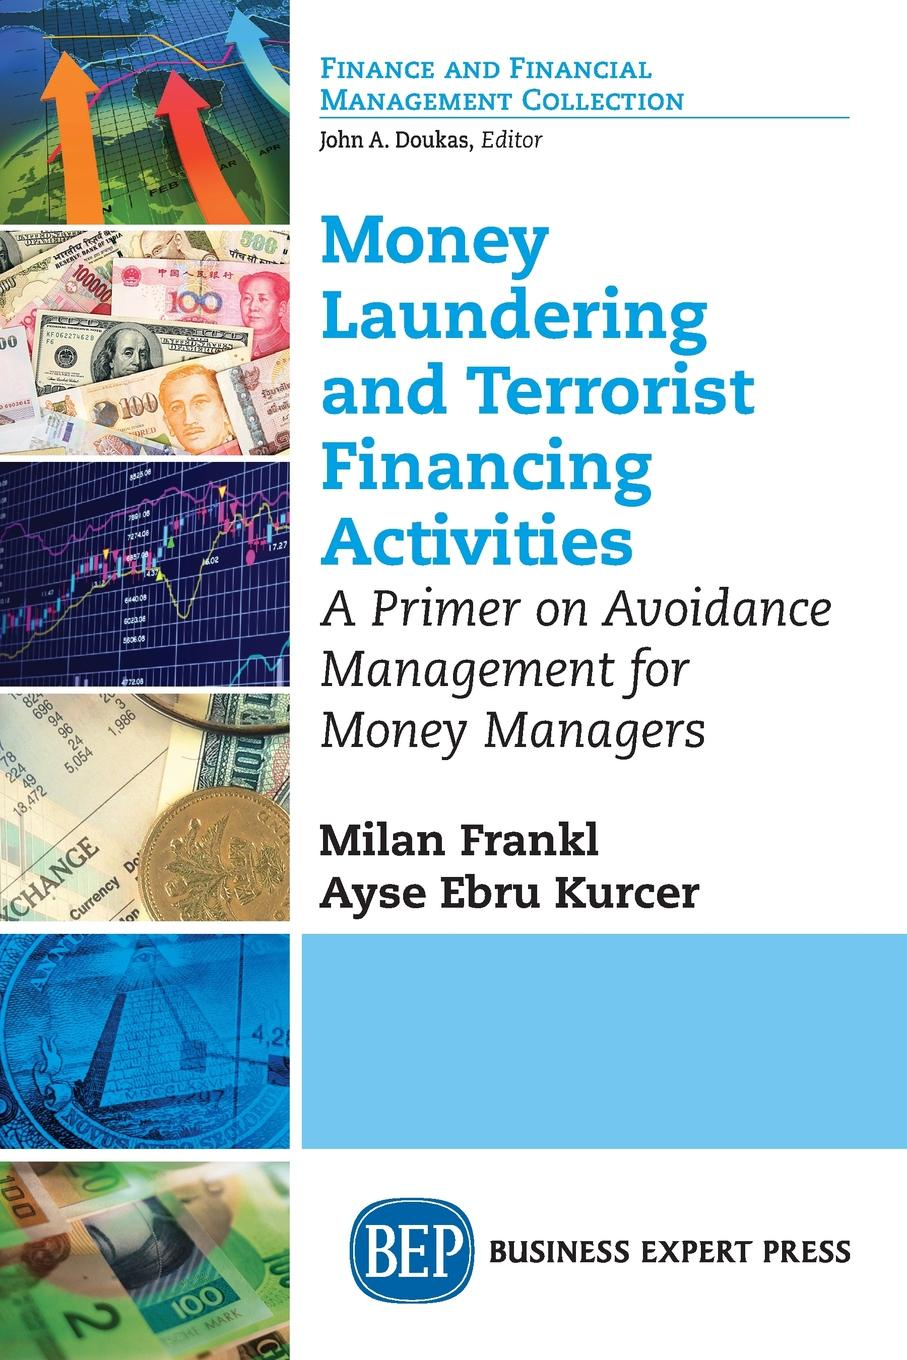 Money Laundering and Terrorist Financing Activities. A Primer on Avoidance Management for Money Managers The purpose of this book is to introduce the reader to mechanisms...